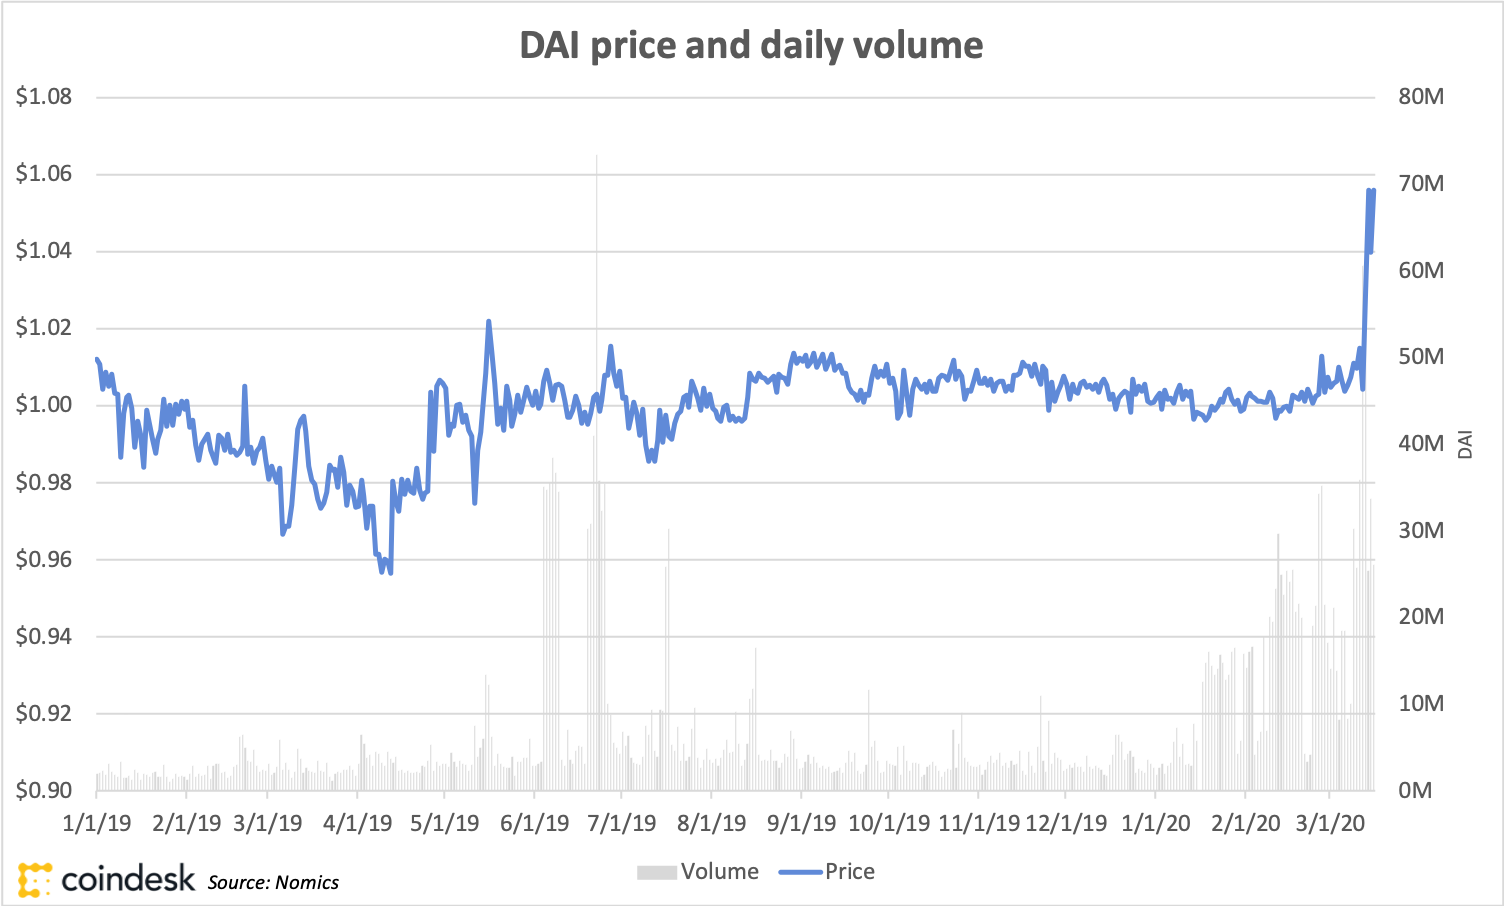 dai cryptocurrency price